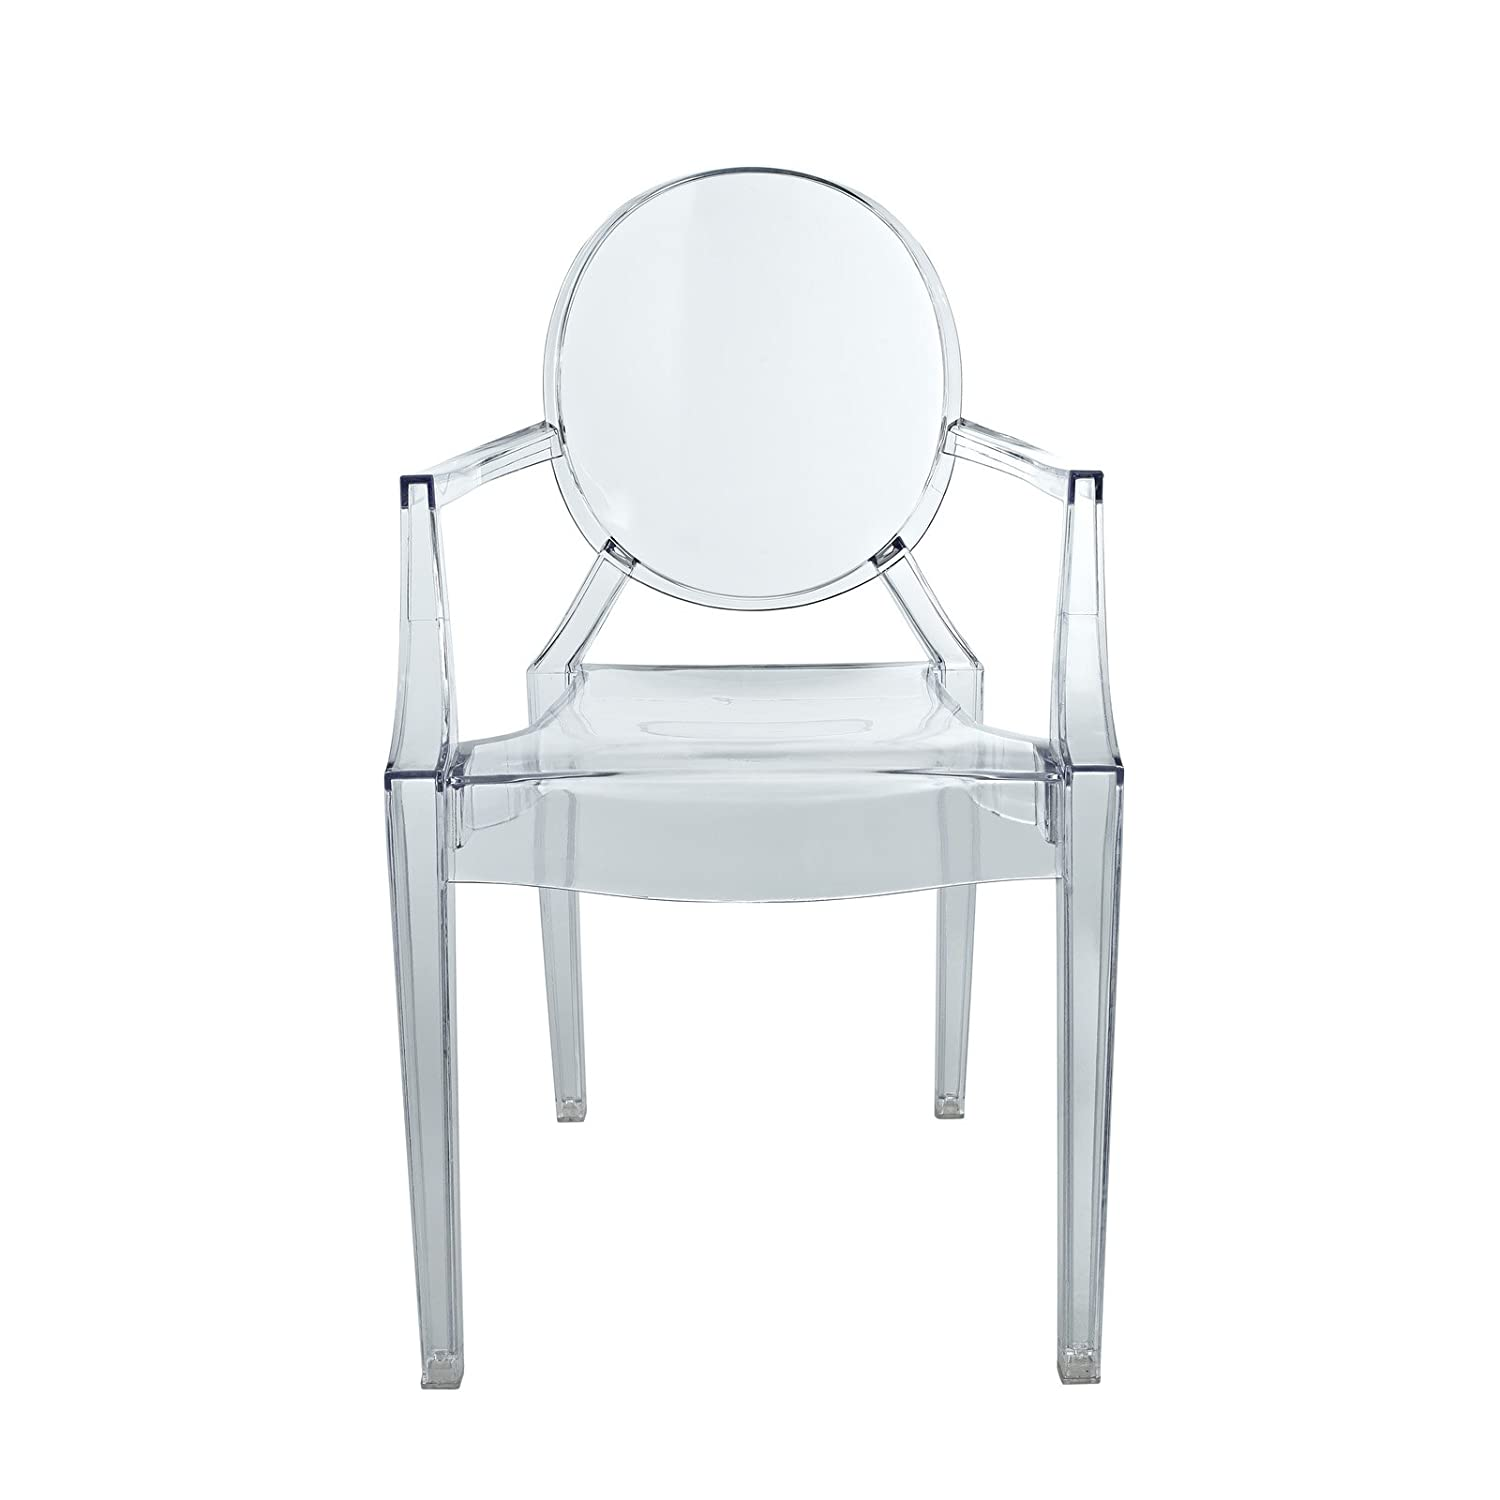 Amazon Modway Miniature Casper Novelty Chair in Clear